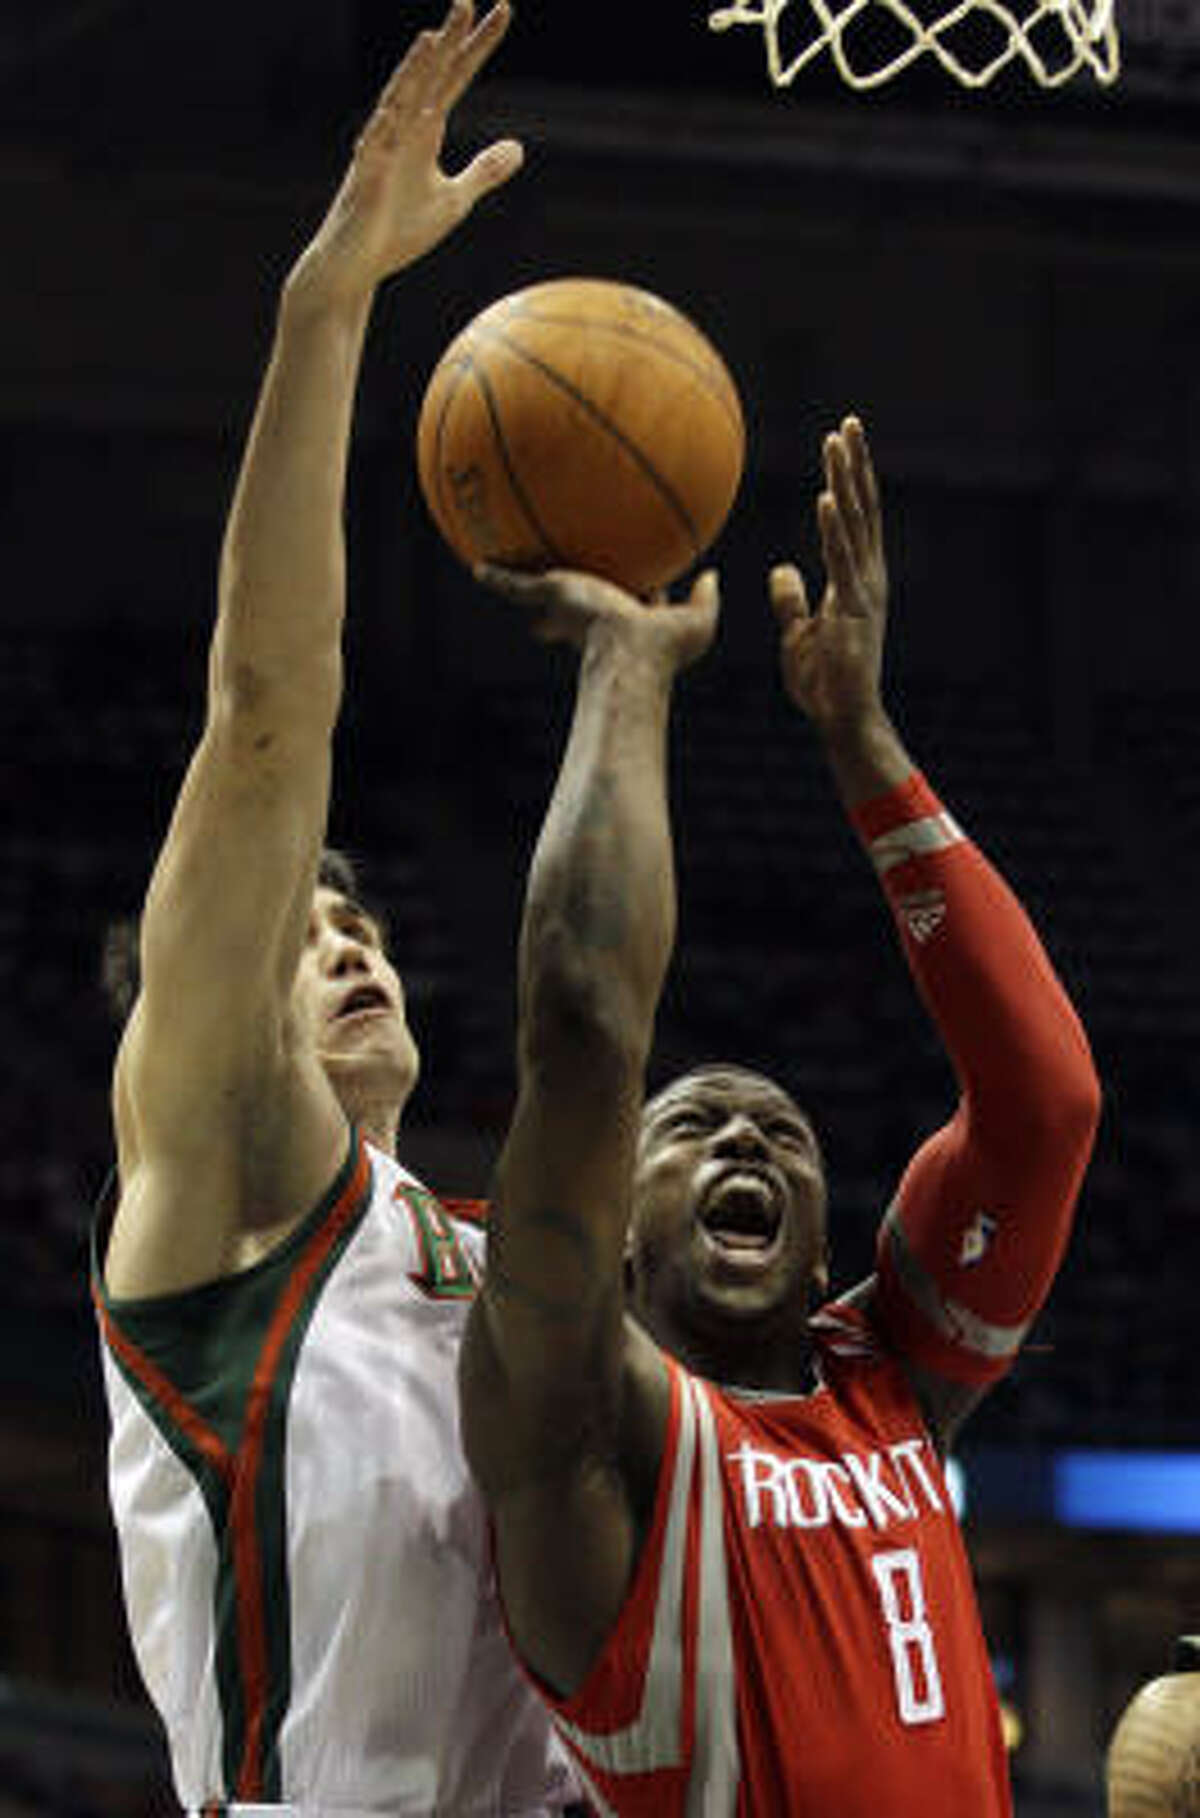 Rockets guard Jermaine Taylor (8) tries to shoot in front of Bucks forward Ersan Ilyasova during the first half.